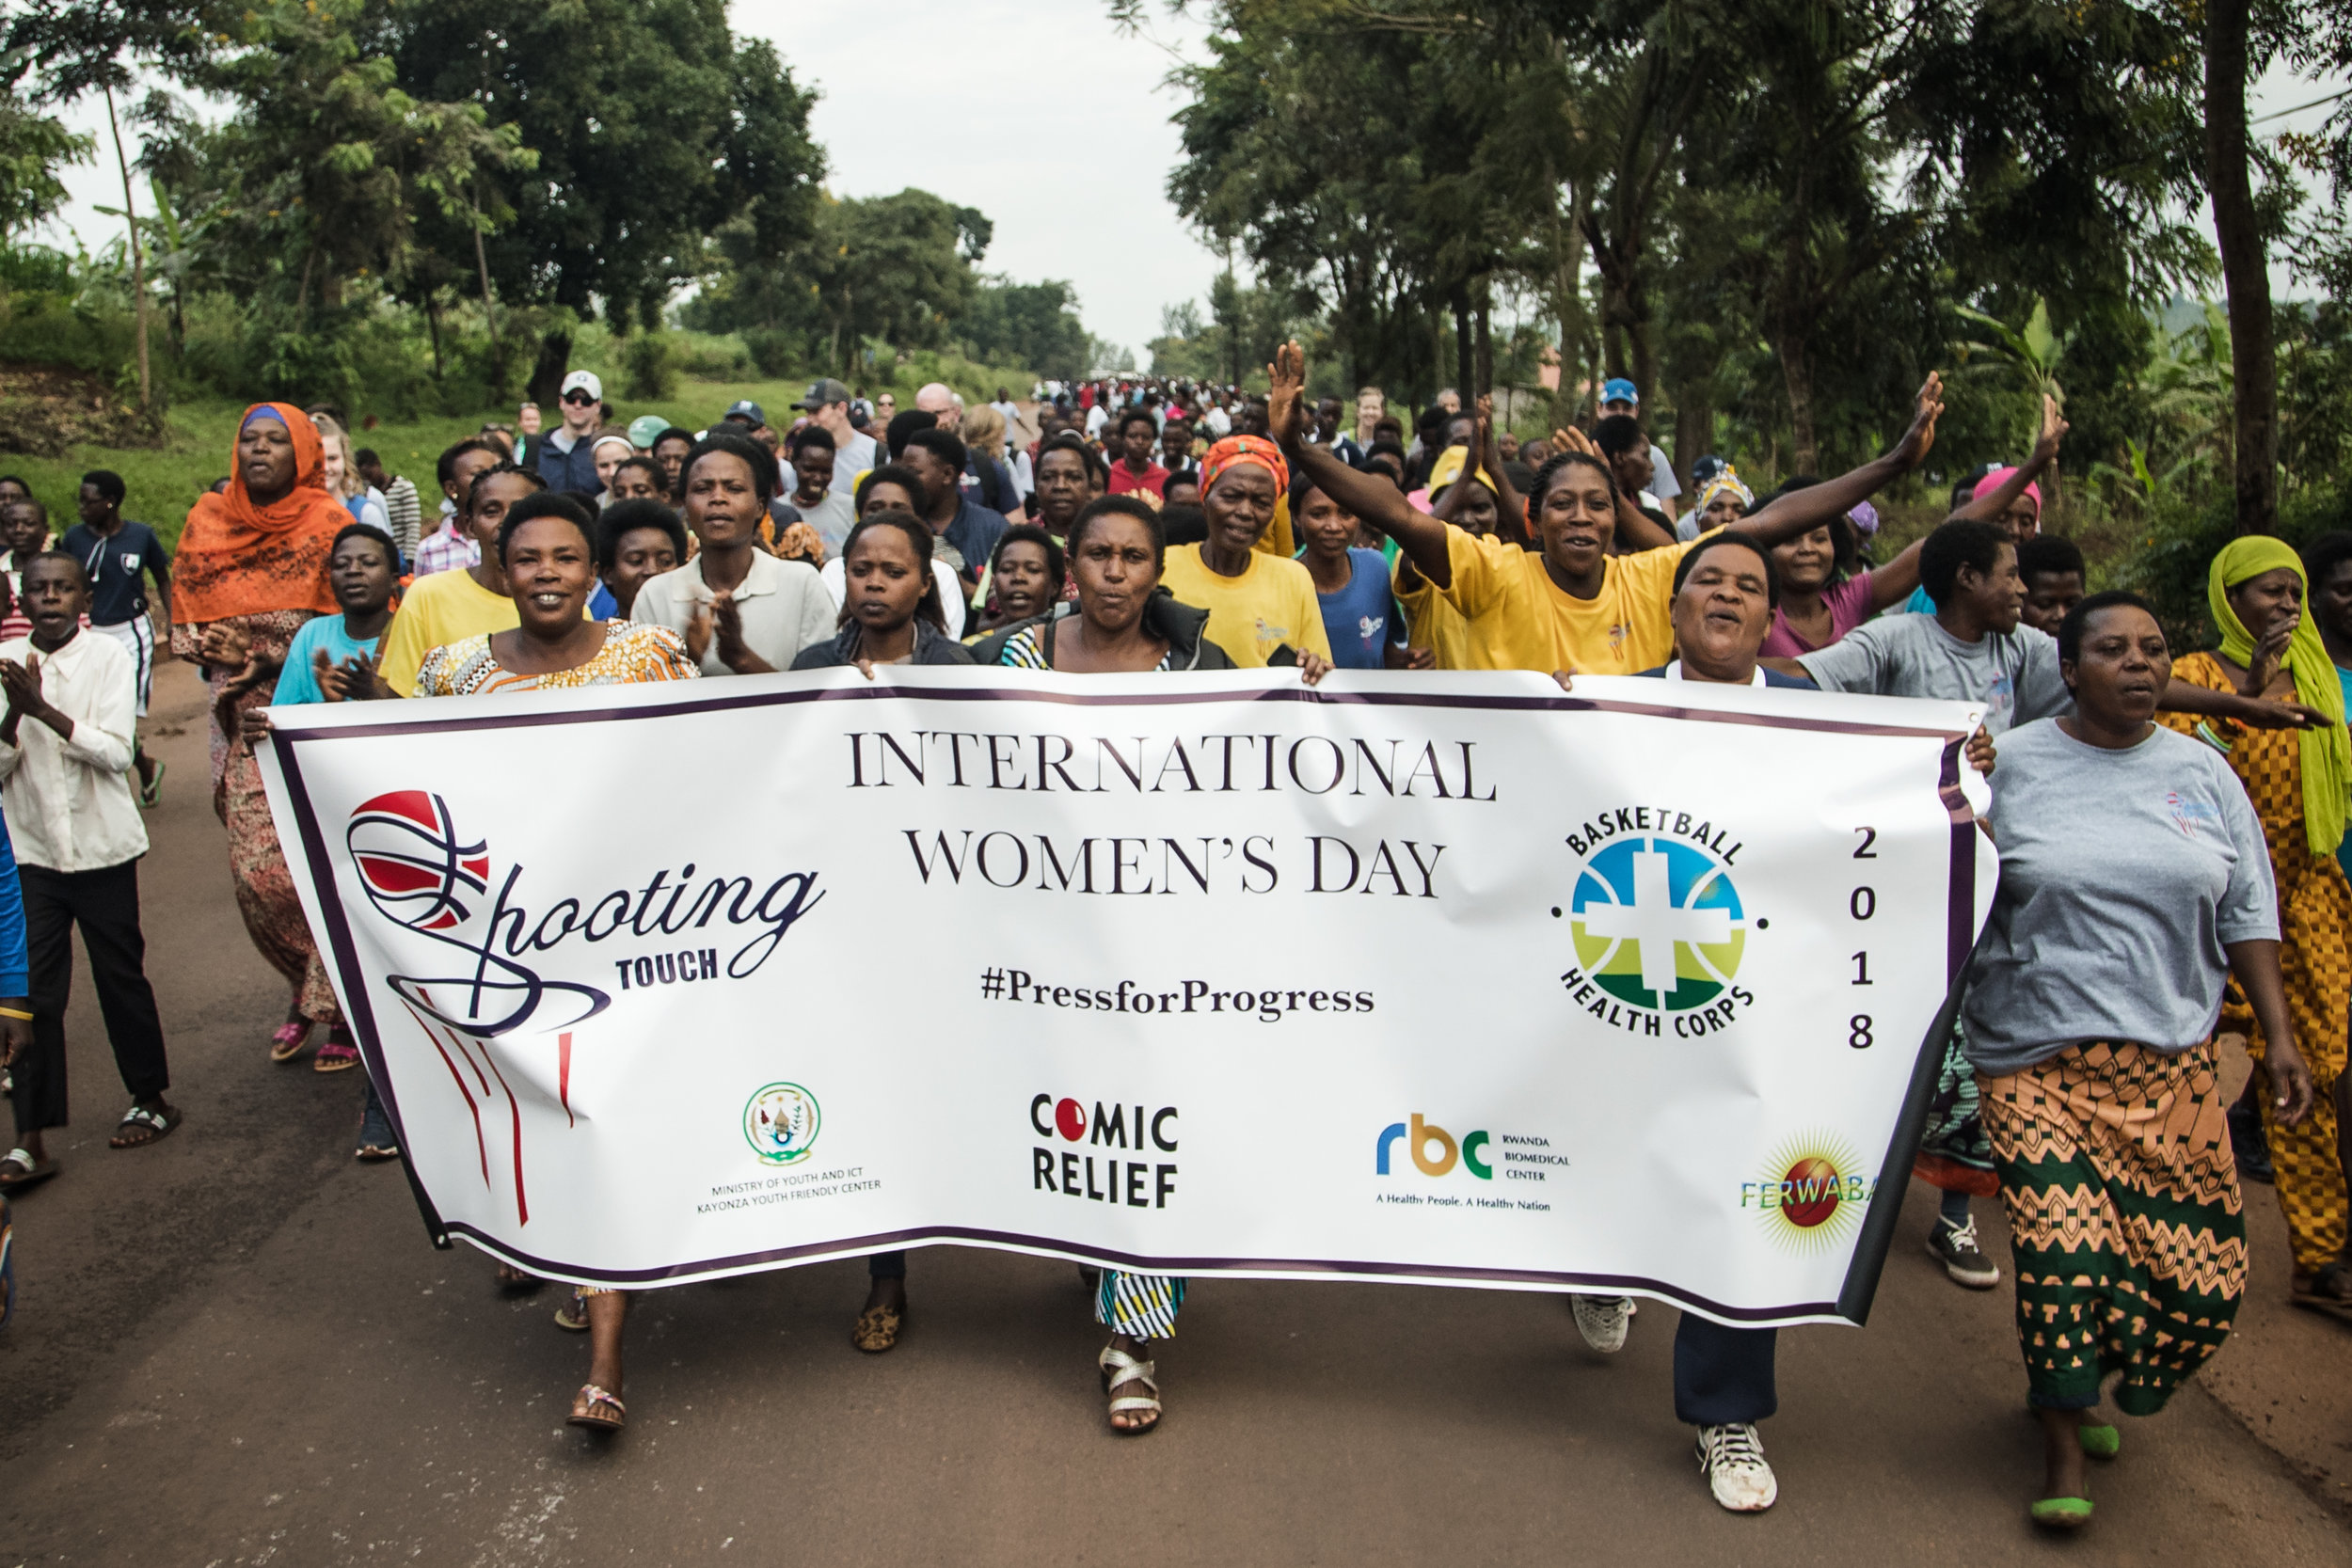 Over 1k people marched through the village of Nyamirama towards a basketball court to celebrate International Women's Day.